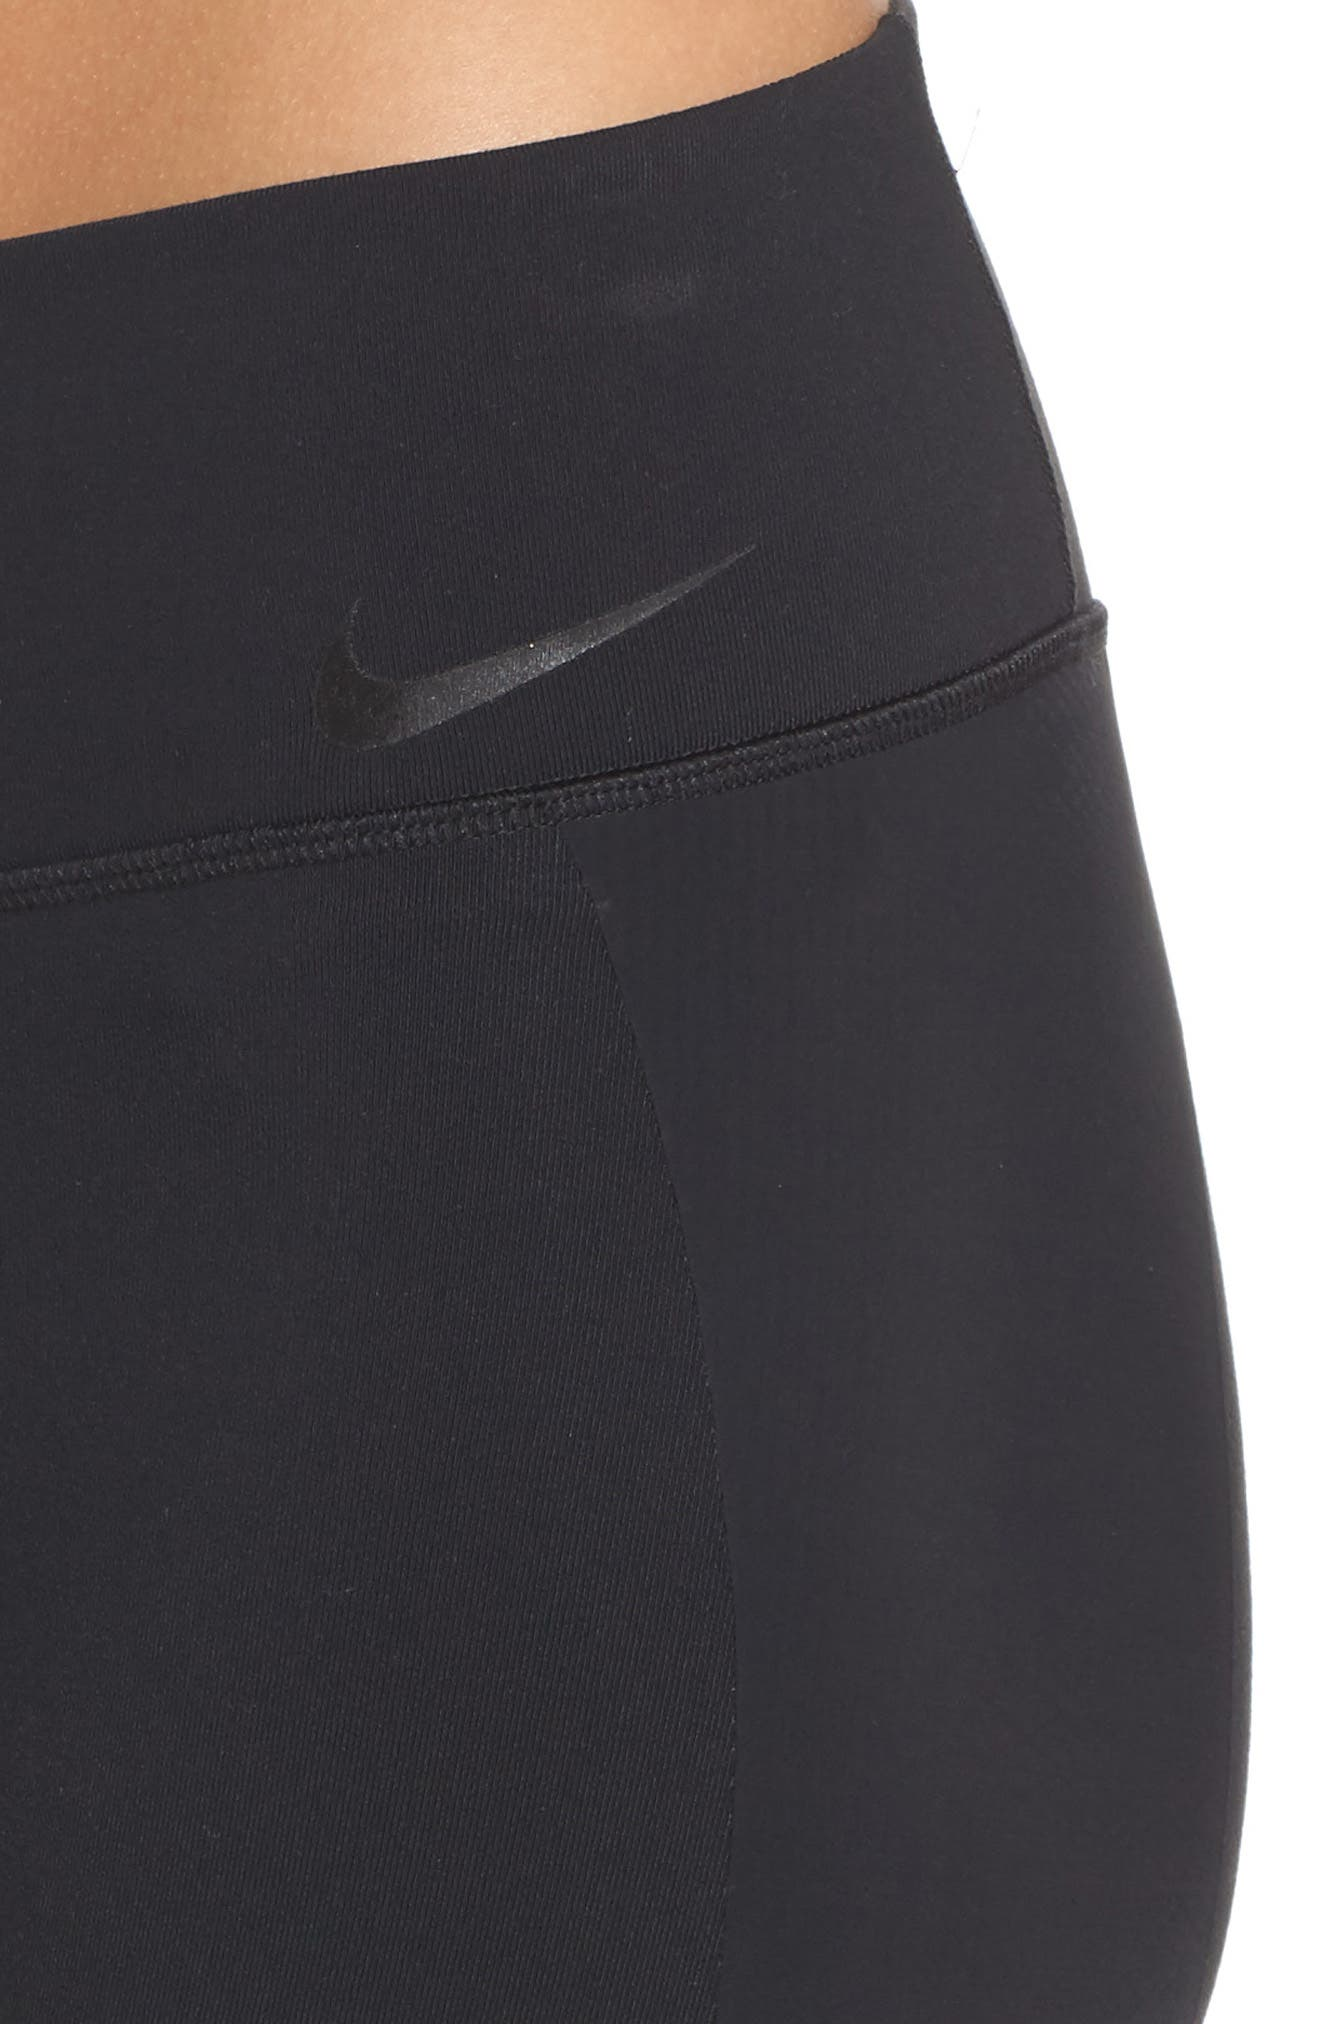 Power Legend Training Tights,                             Alternate thumbnail 11, color,